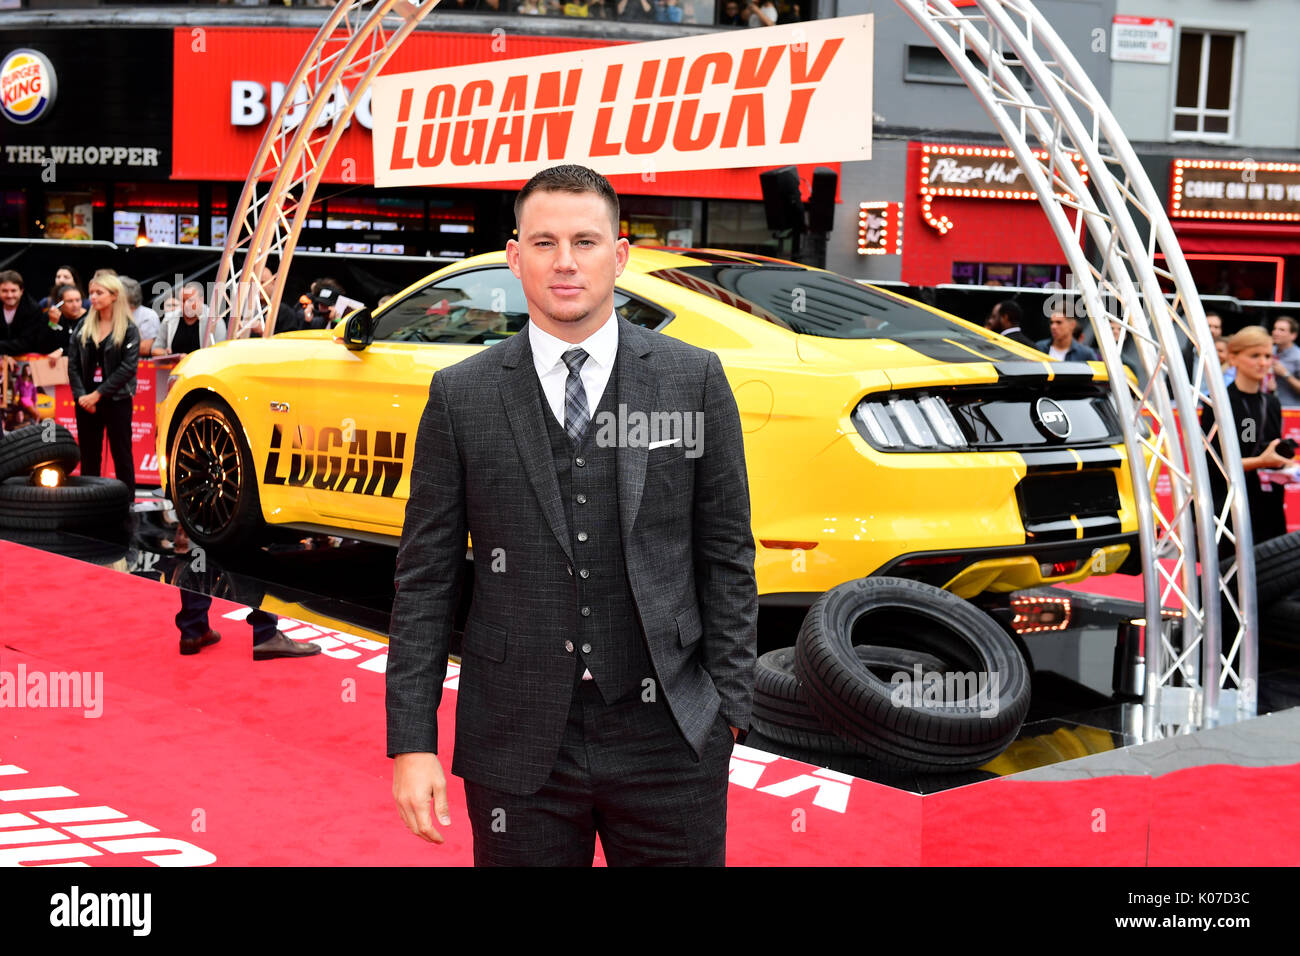 Channing Tatum attending the Logan Lucky UK Premiere held at Vue West End in Leicester Square, London. Stock Photo